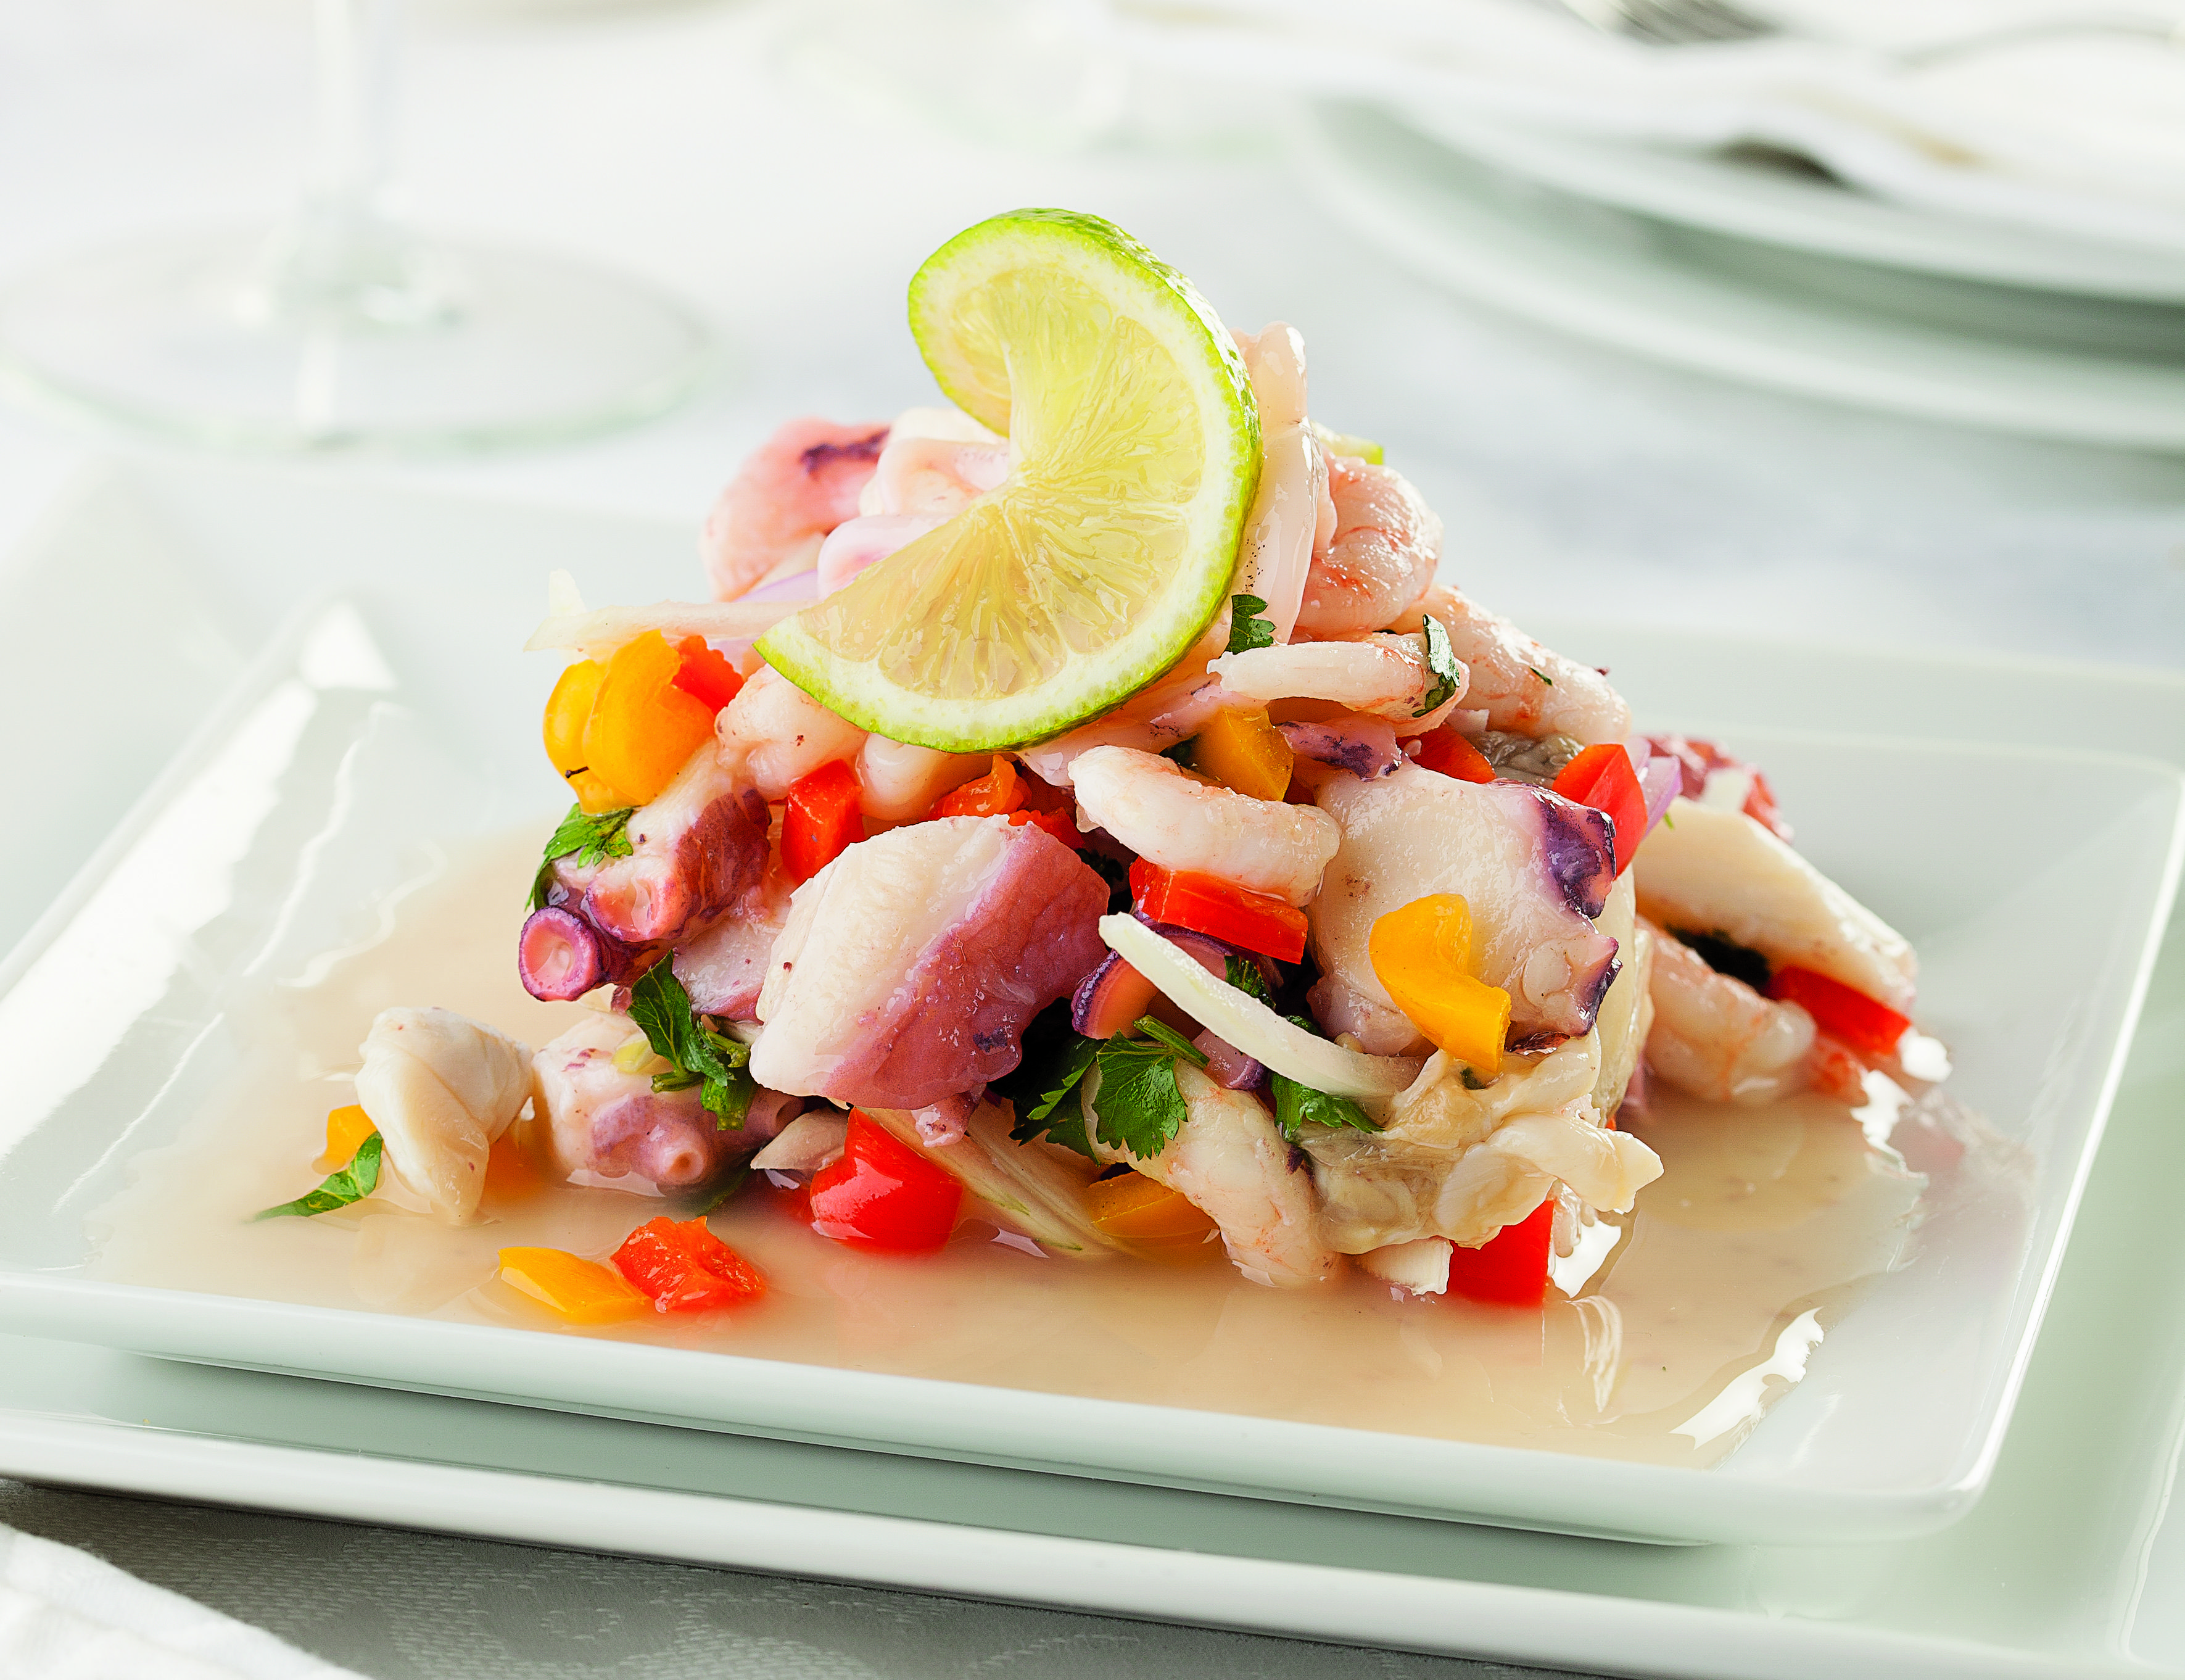 A colorful plate of ceviche, a beloved Peruvian dish